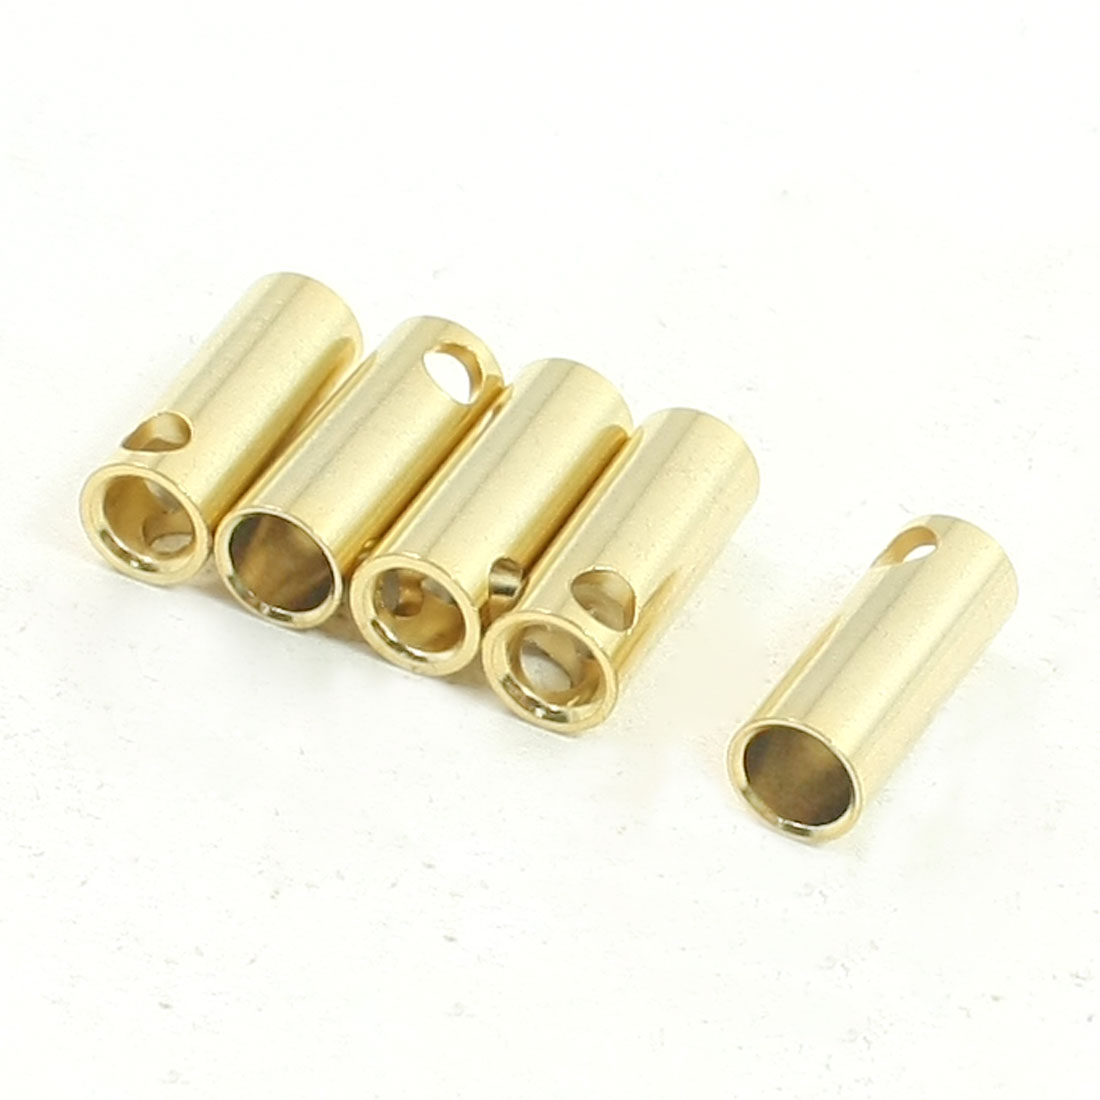 RC Model Helicopter Motor Battery 5.5mm Banana Plug Female Connector 5 Pcs